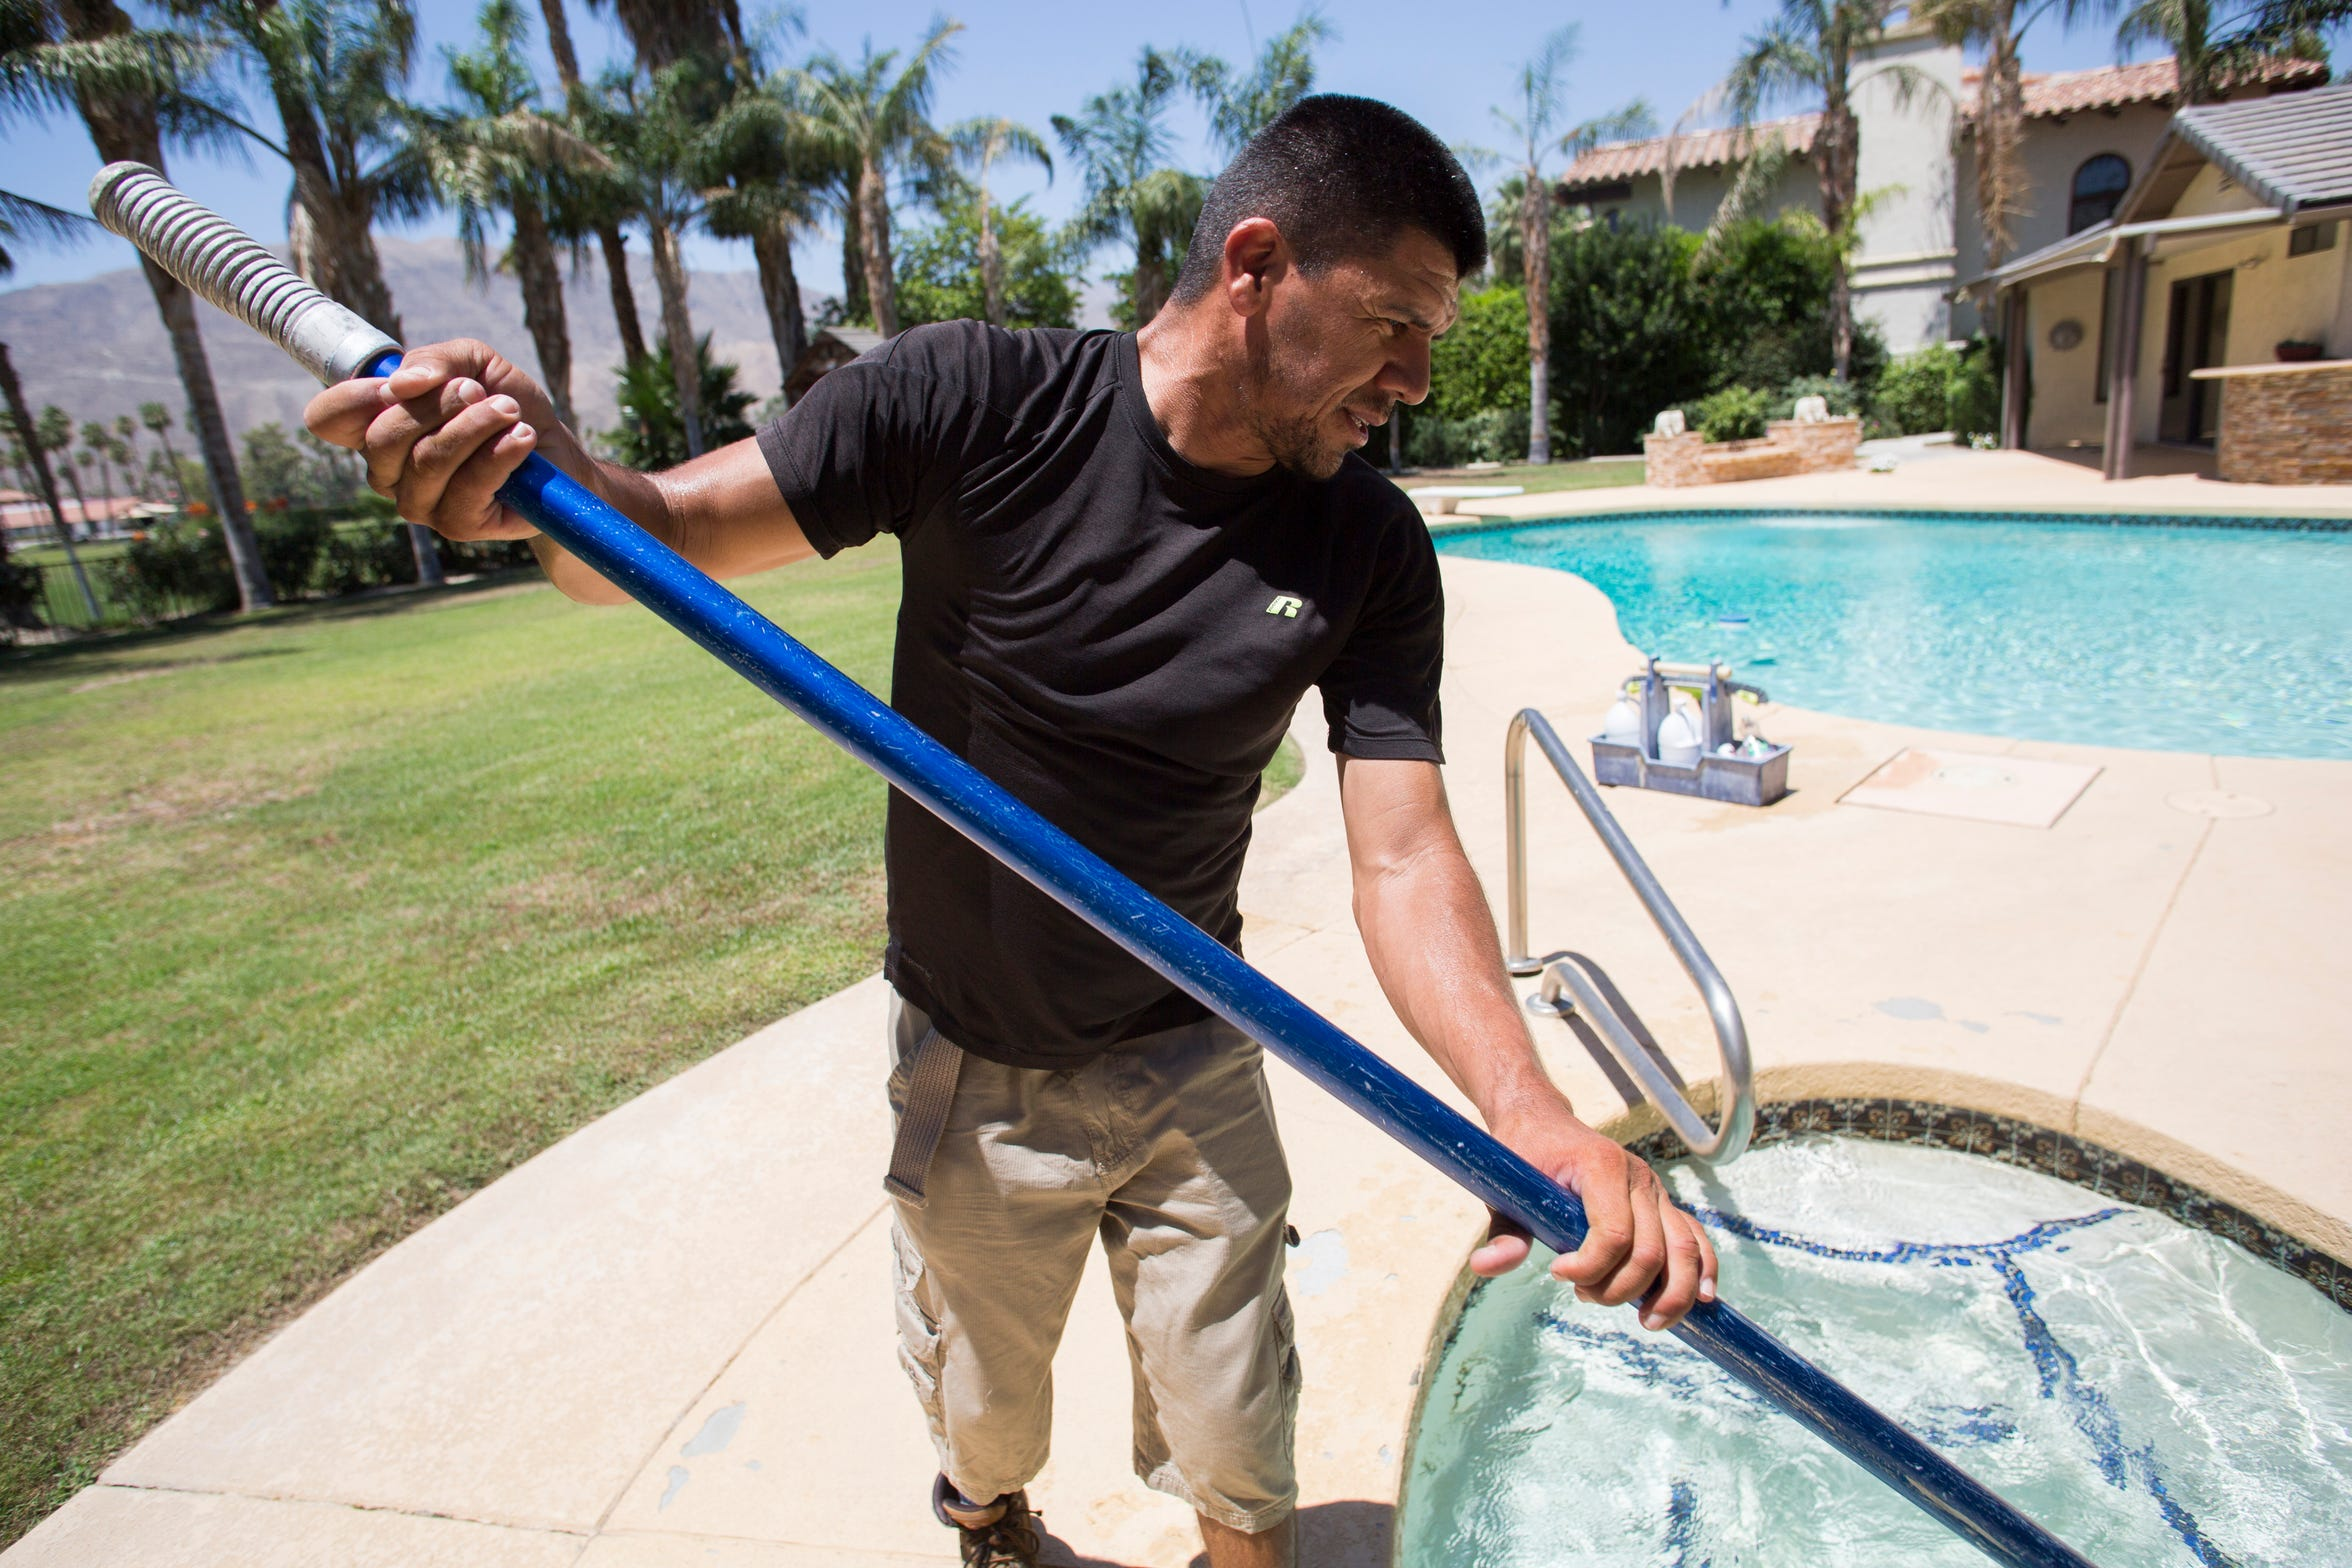 Miguel Vazquez cleans a pool in the Coachella Valley on June 19, 2019.